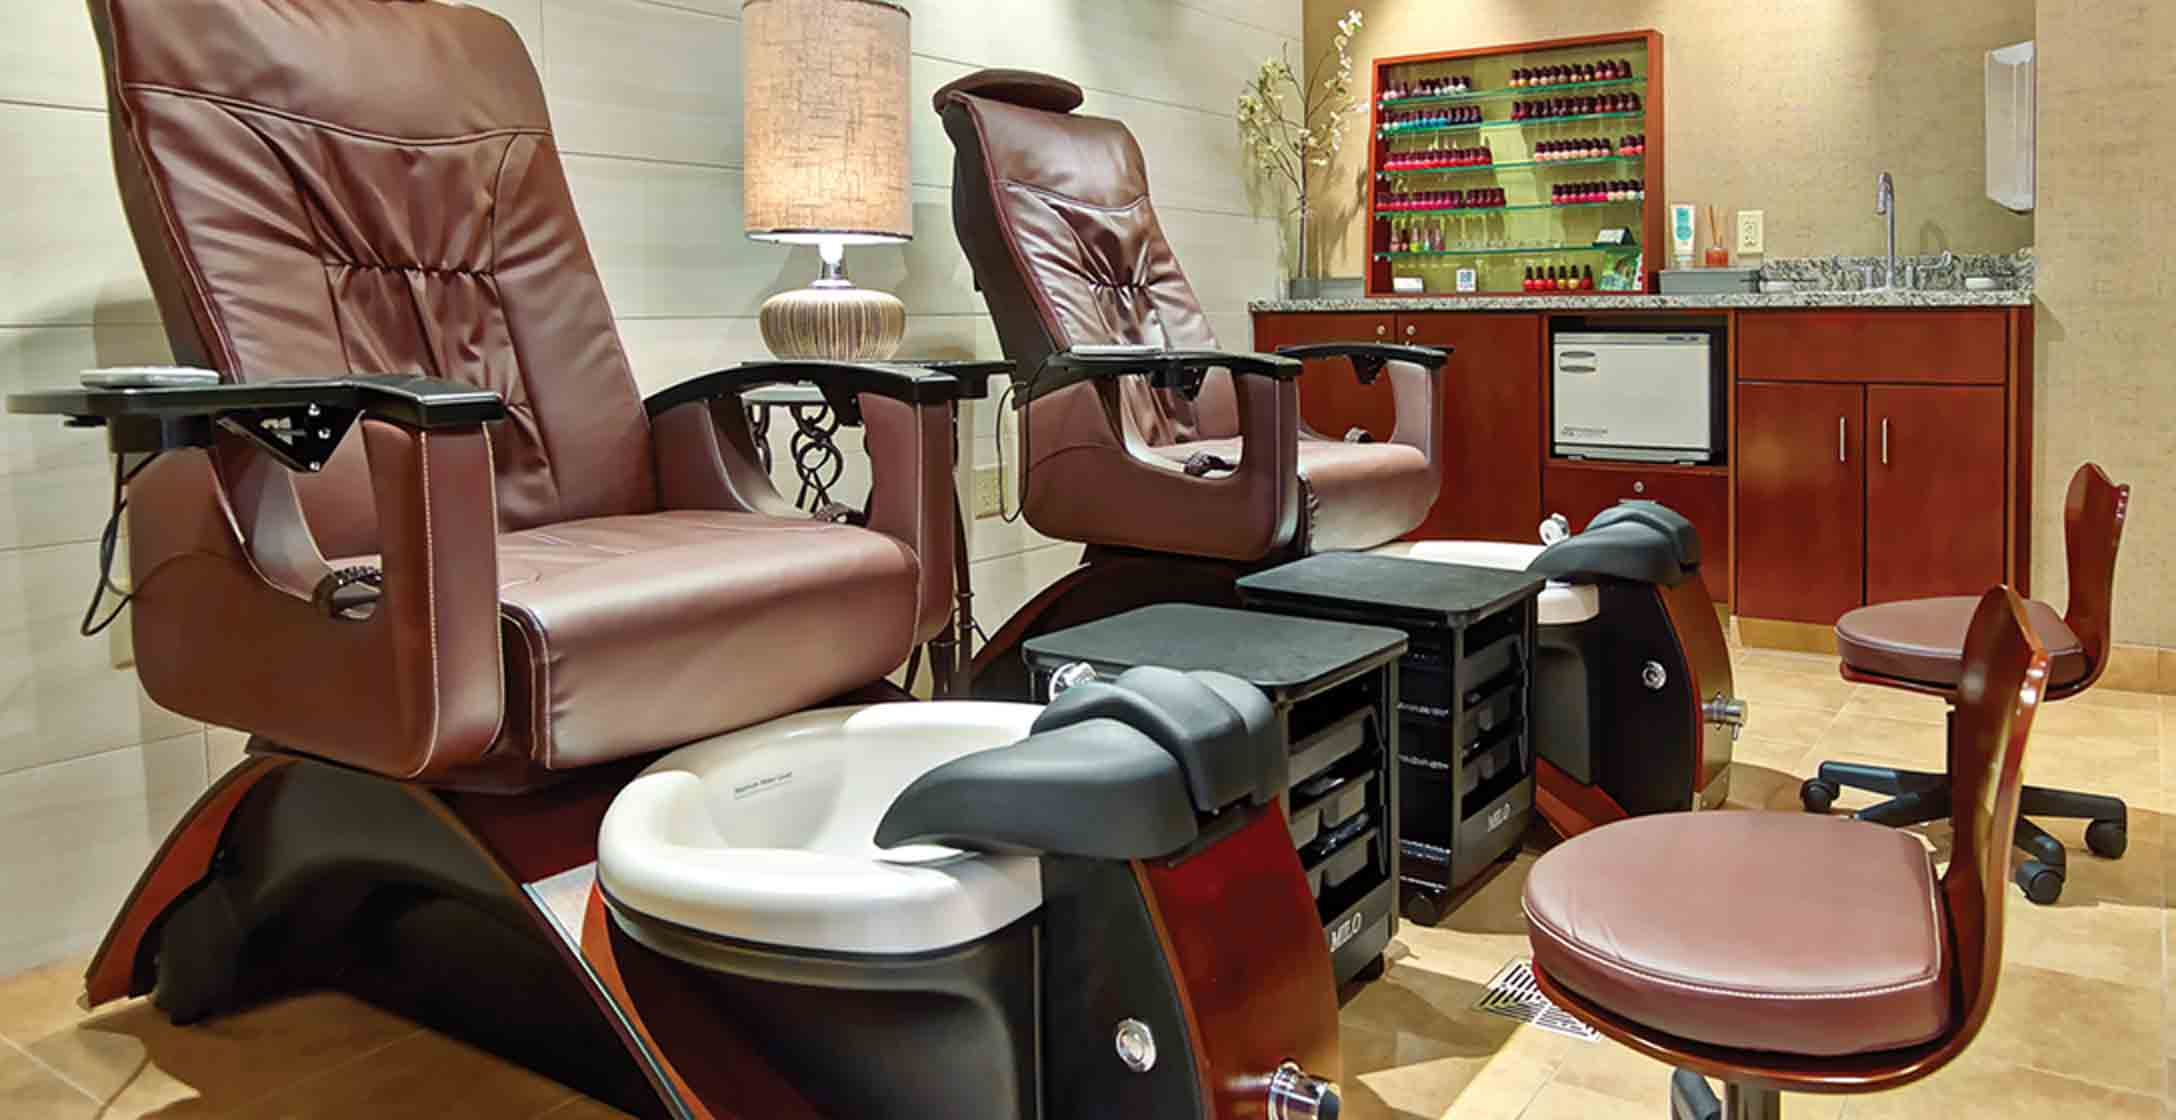 Pedicure chairs at the LifeSpa